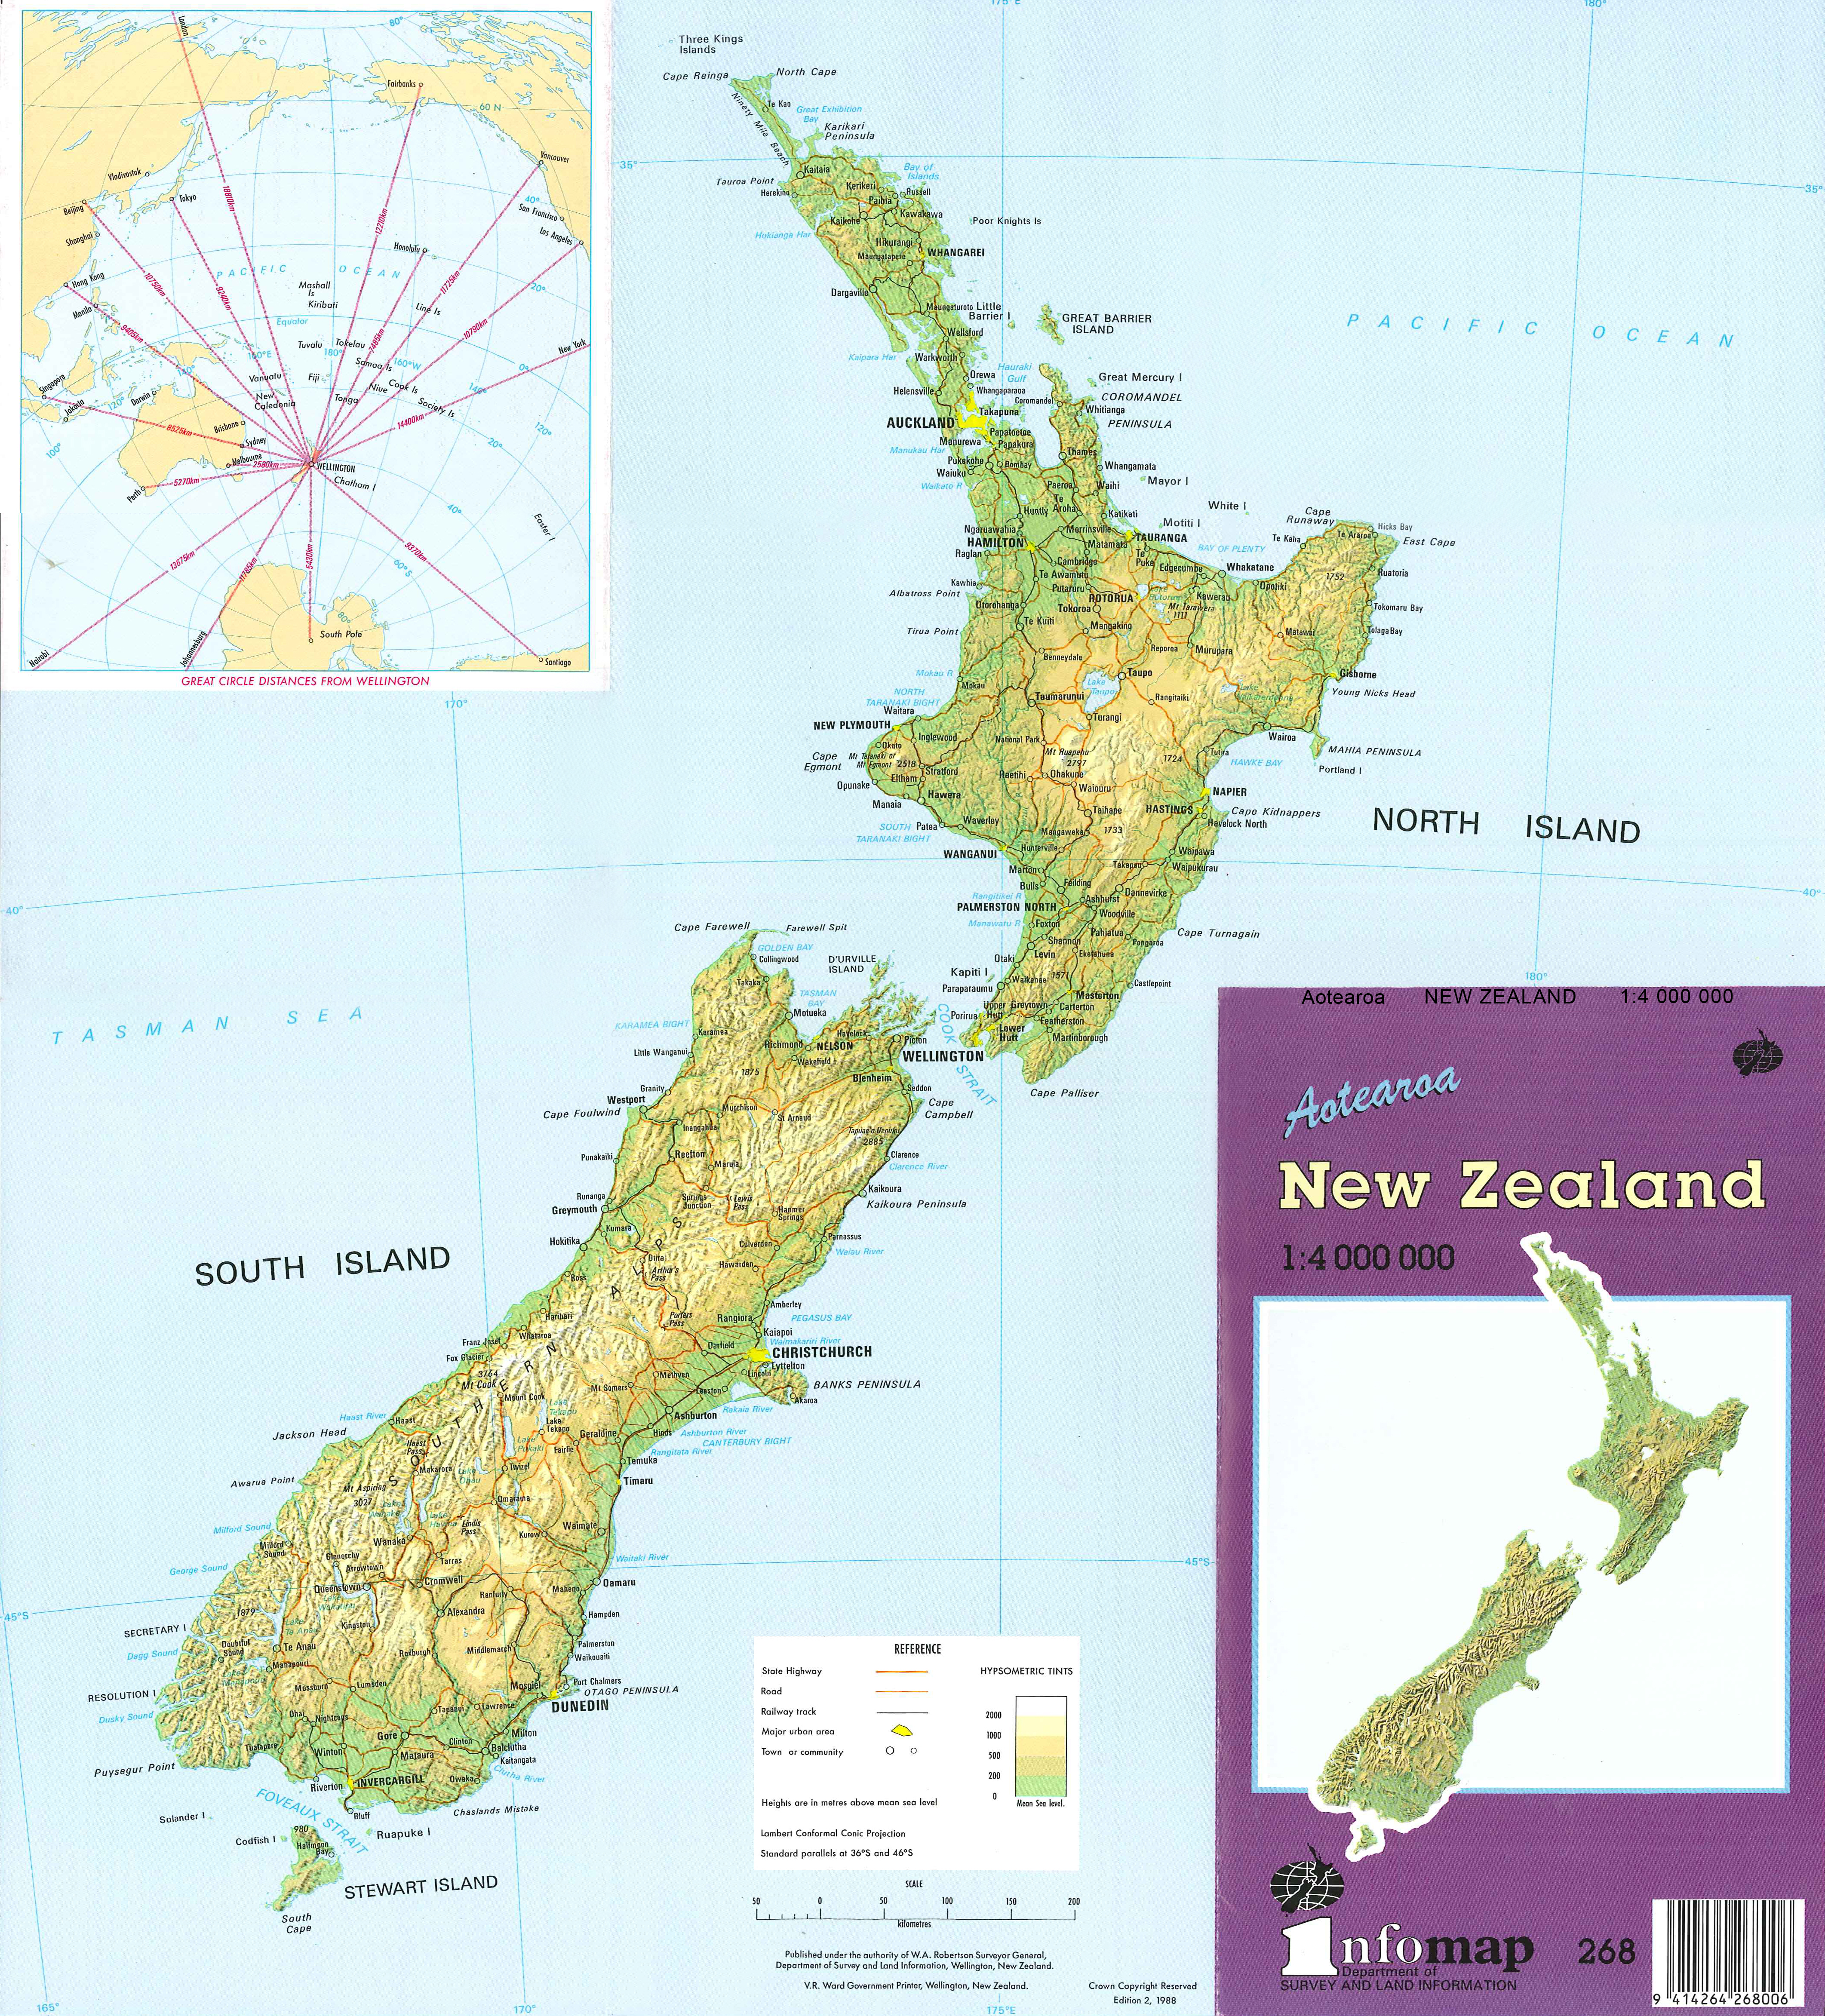 New Zealand Map With Cities And Towns.Maps Of New Zealand Maoripakeha Co Nz